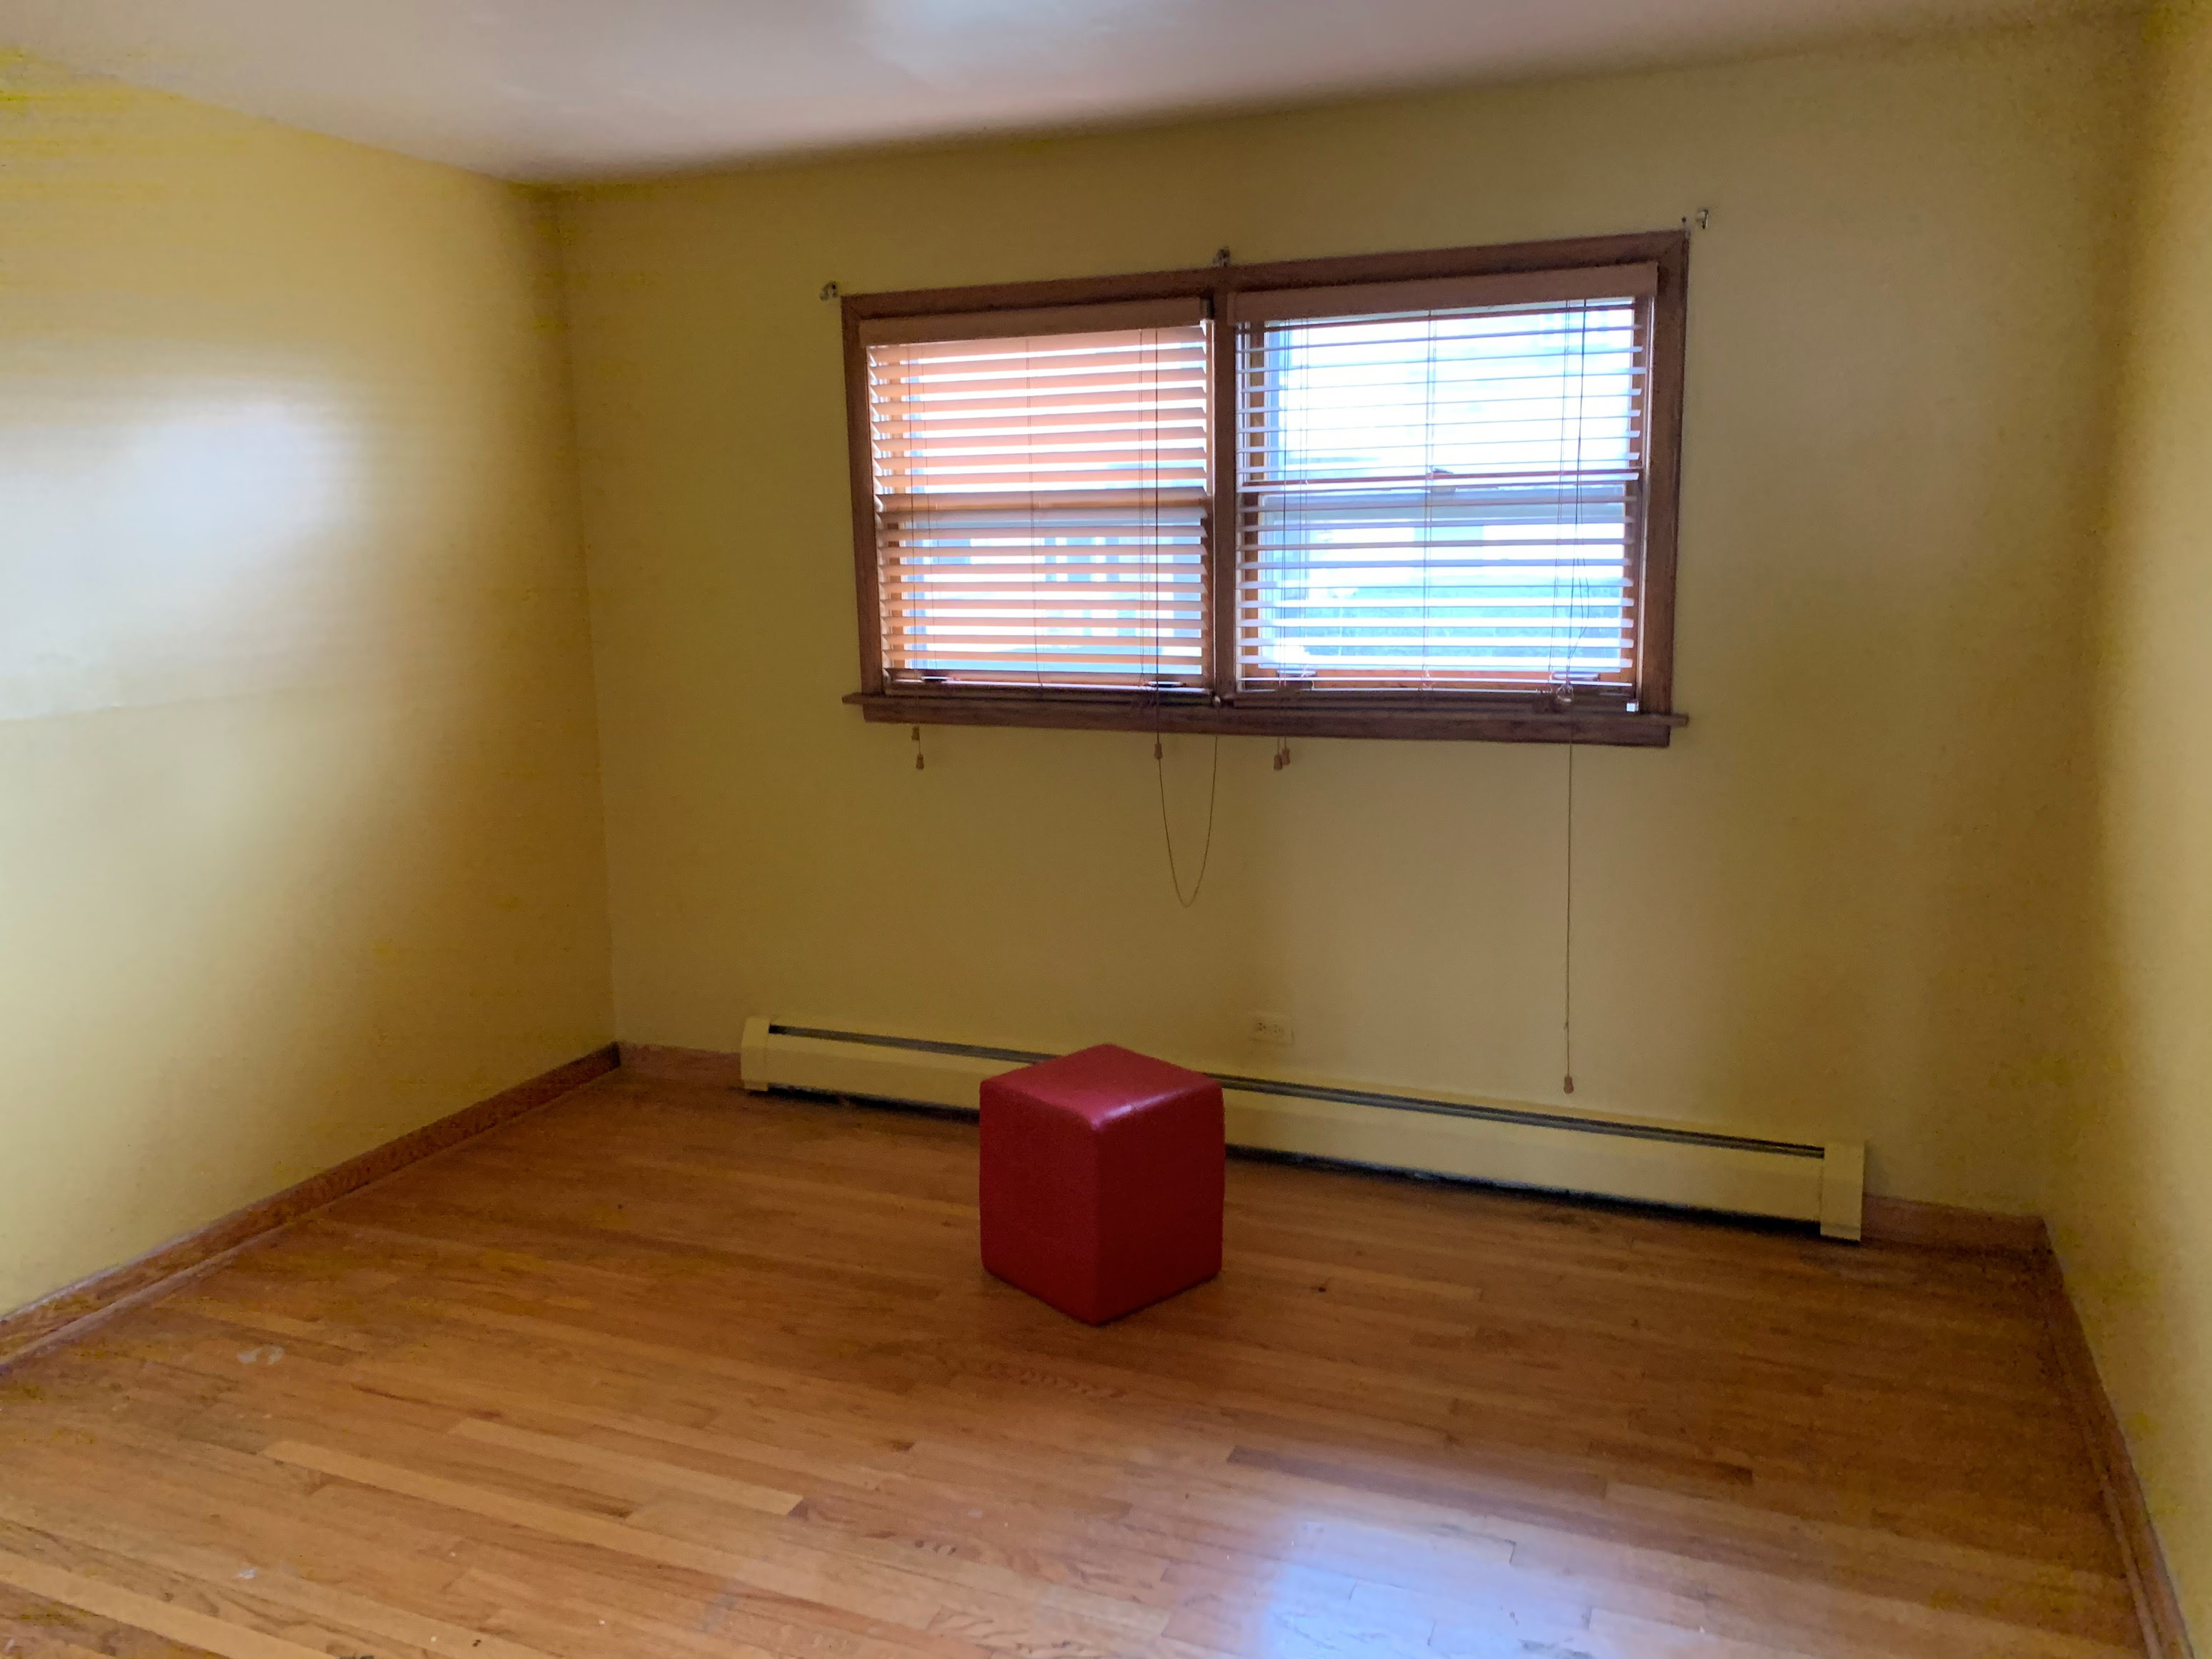 Apartment For Rent Montreal 300 - Apartement